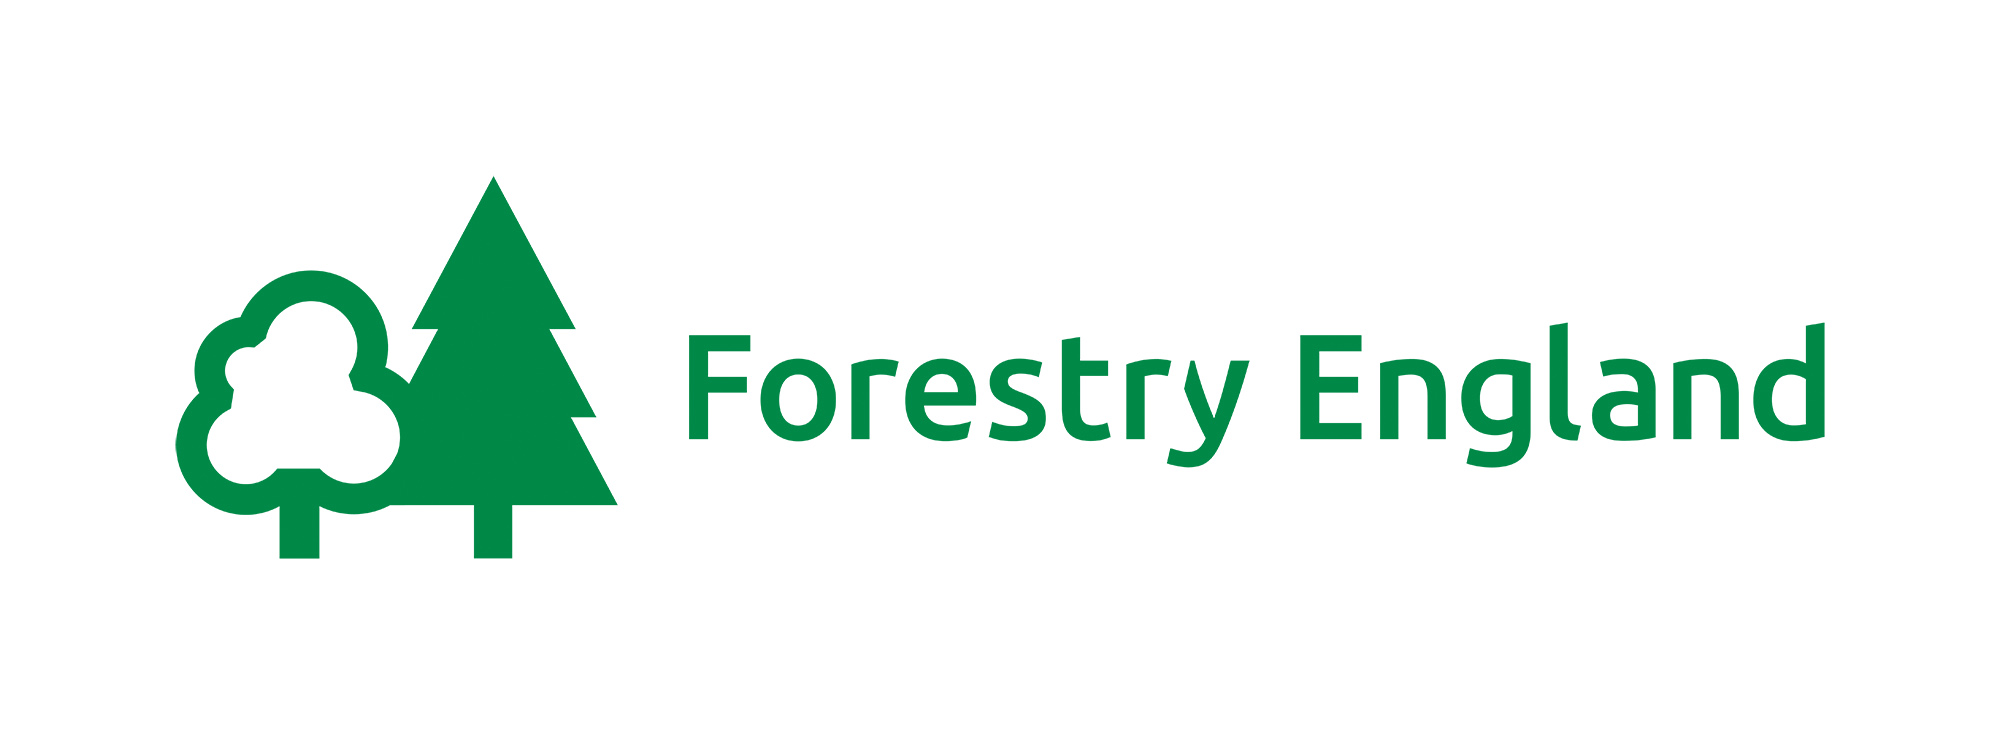 FE digital logos_FE_Primary_Logo_Green.jpg